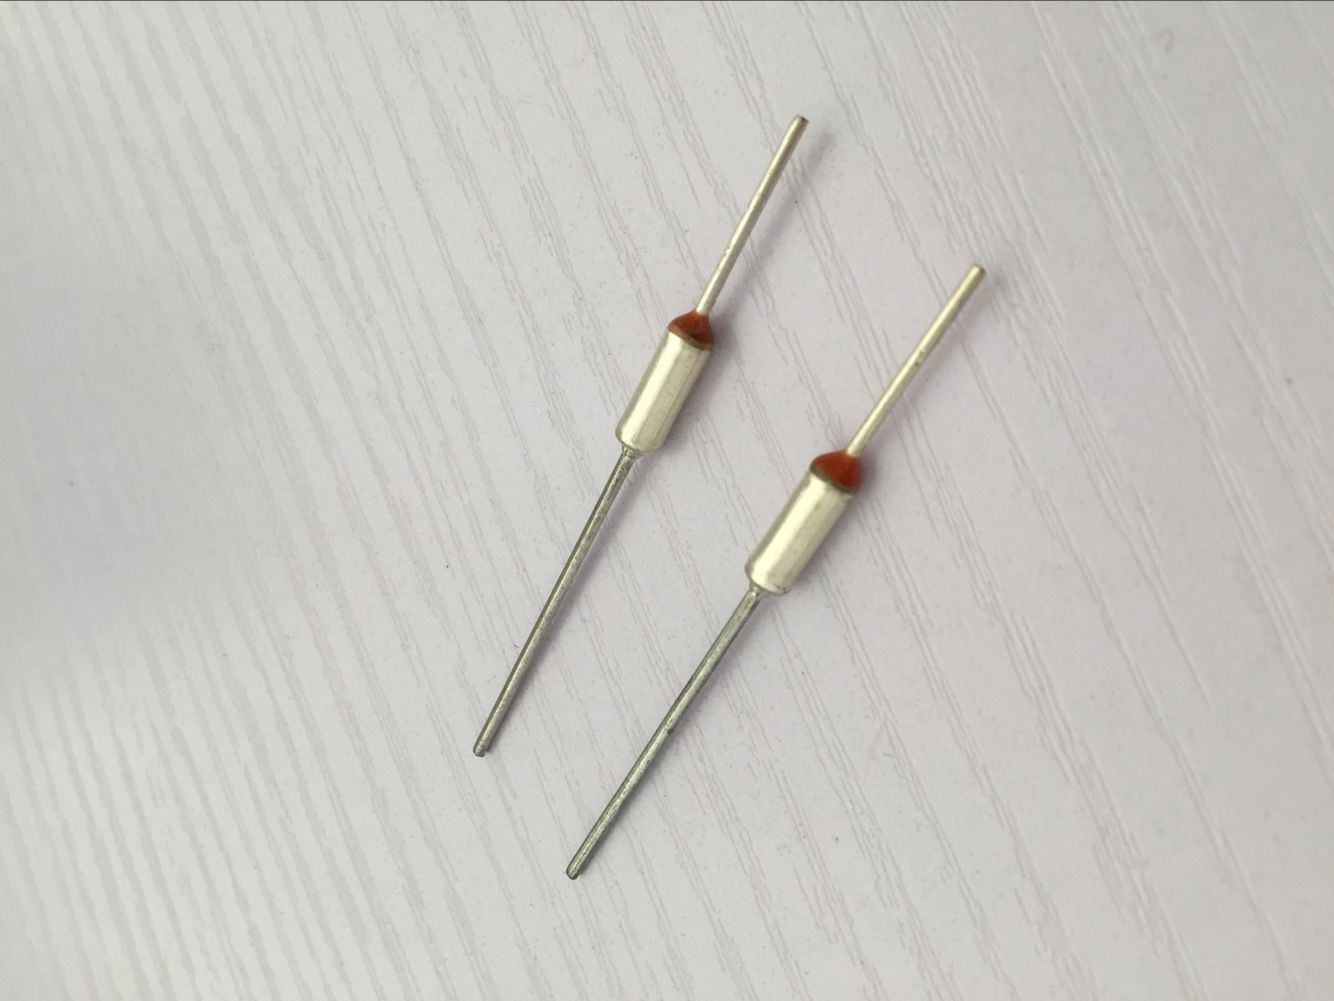 Non-Resetable Thermal Fuse for Home Applications